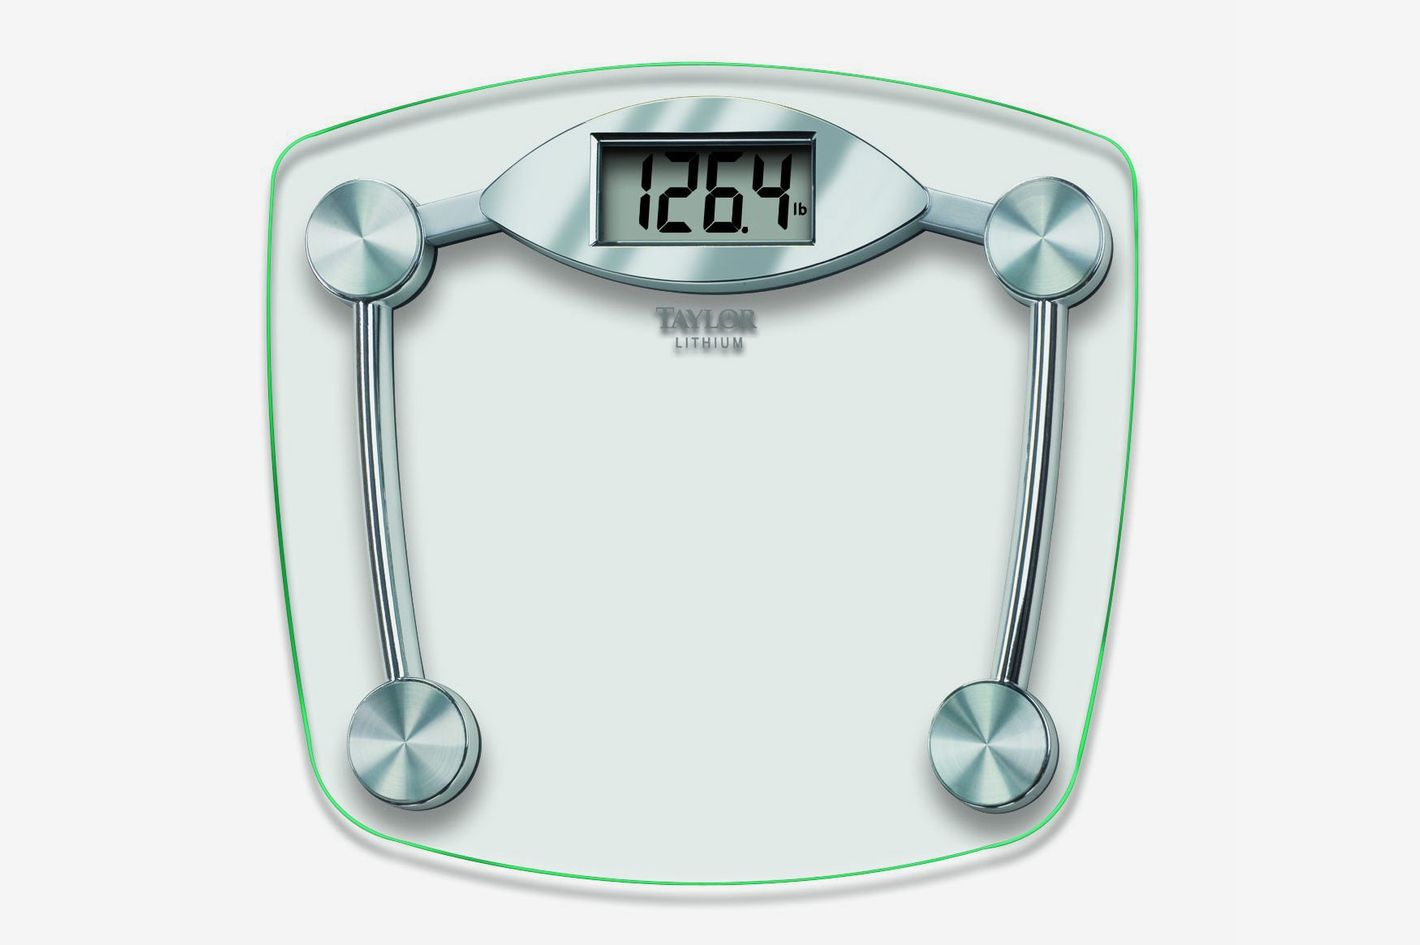 Best Taylor glass bathroom scale